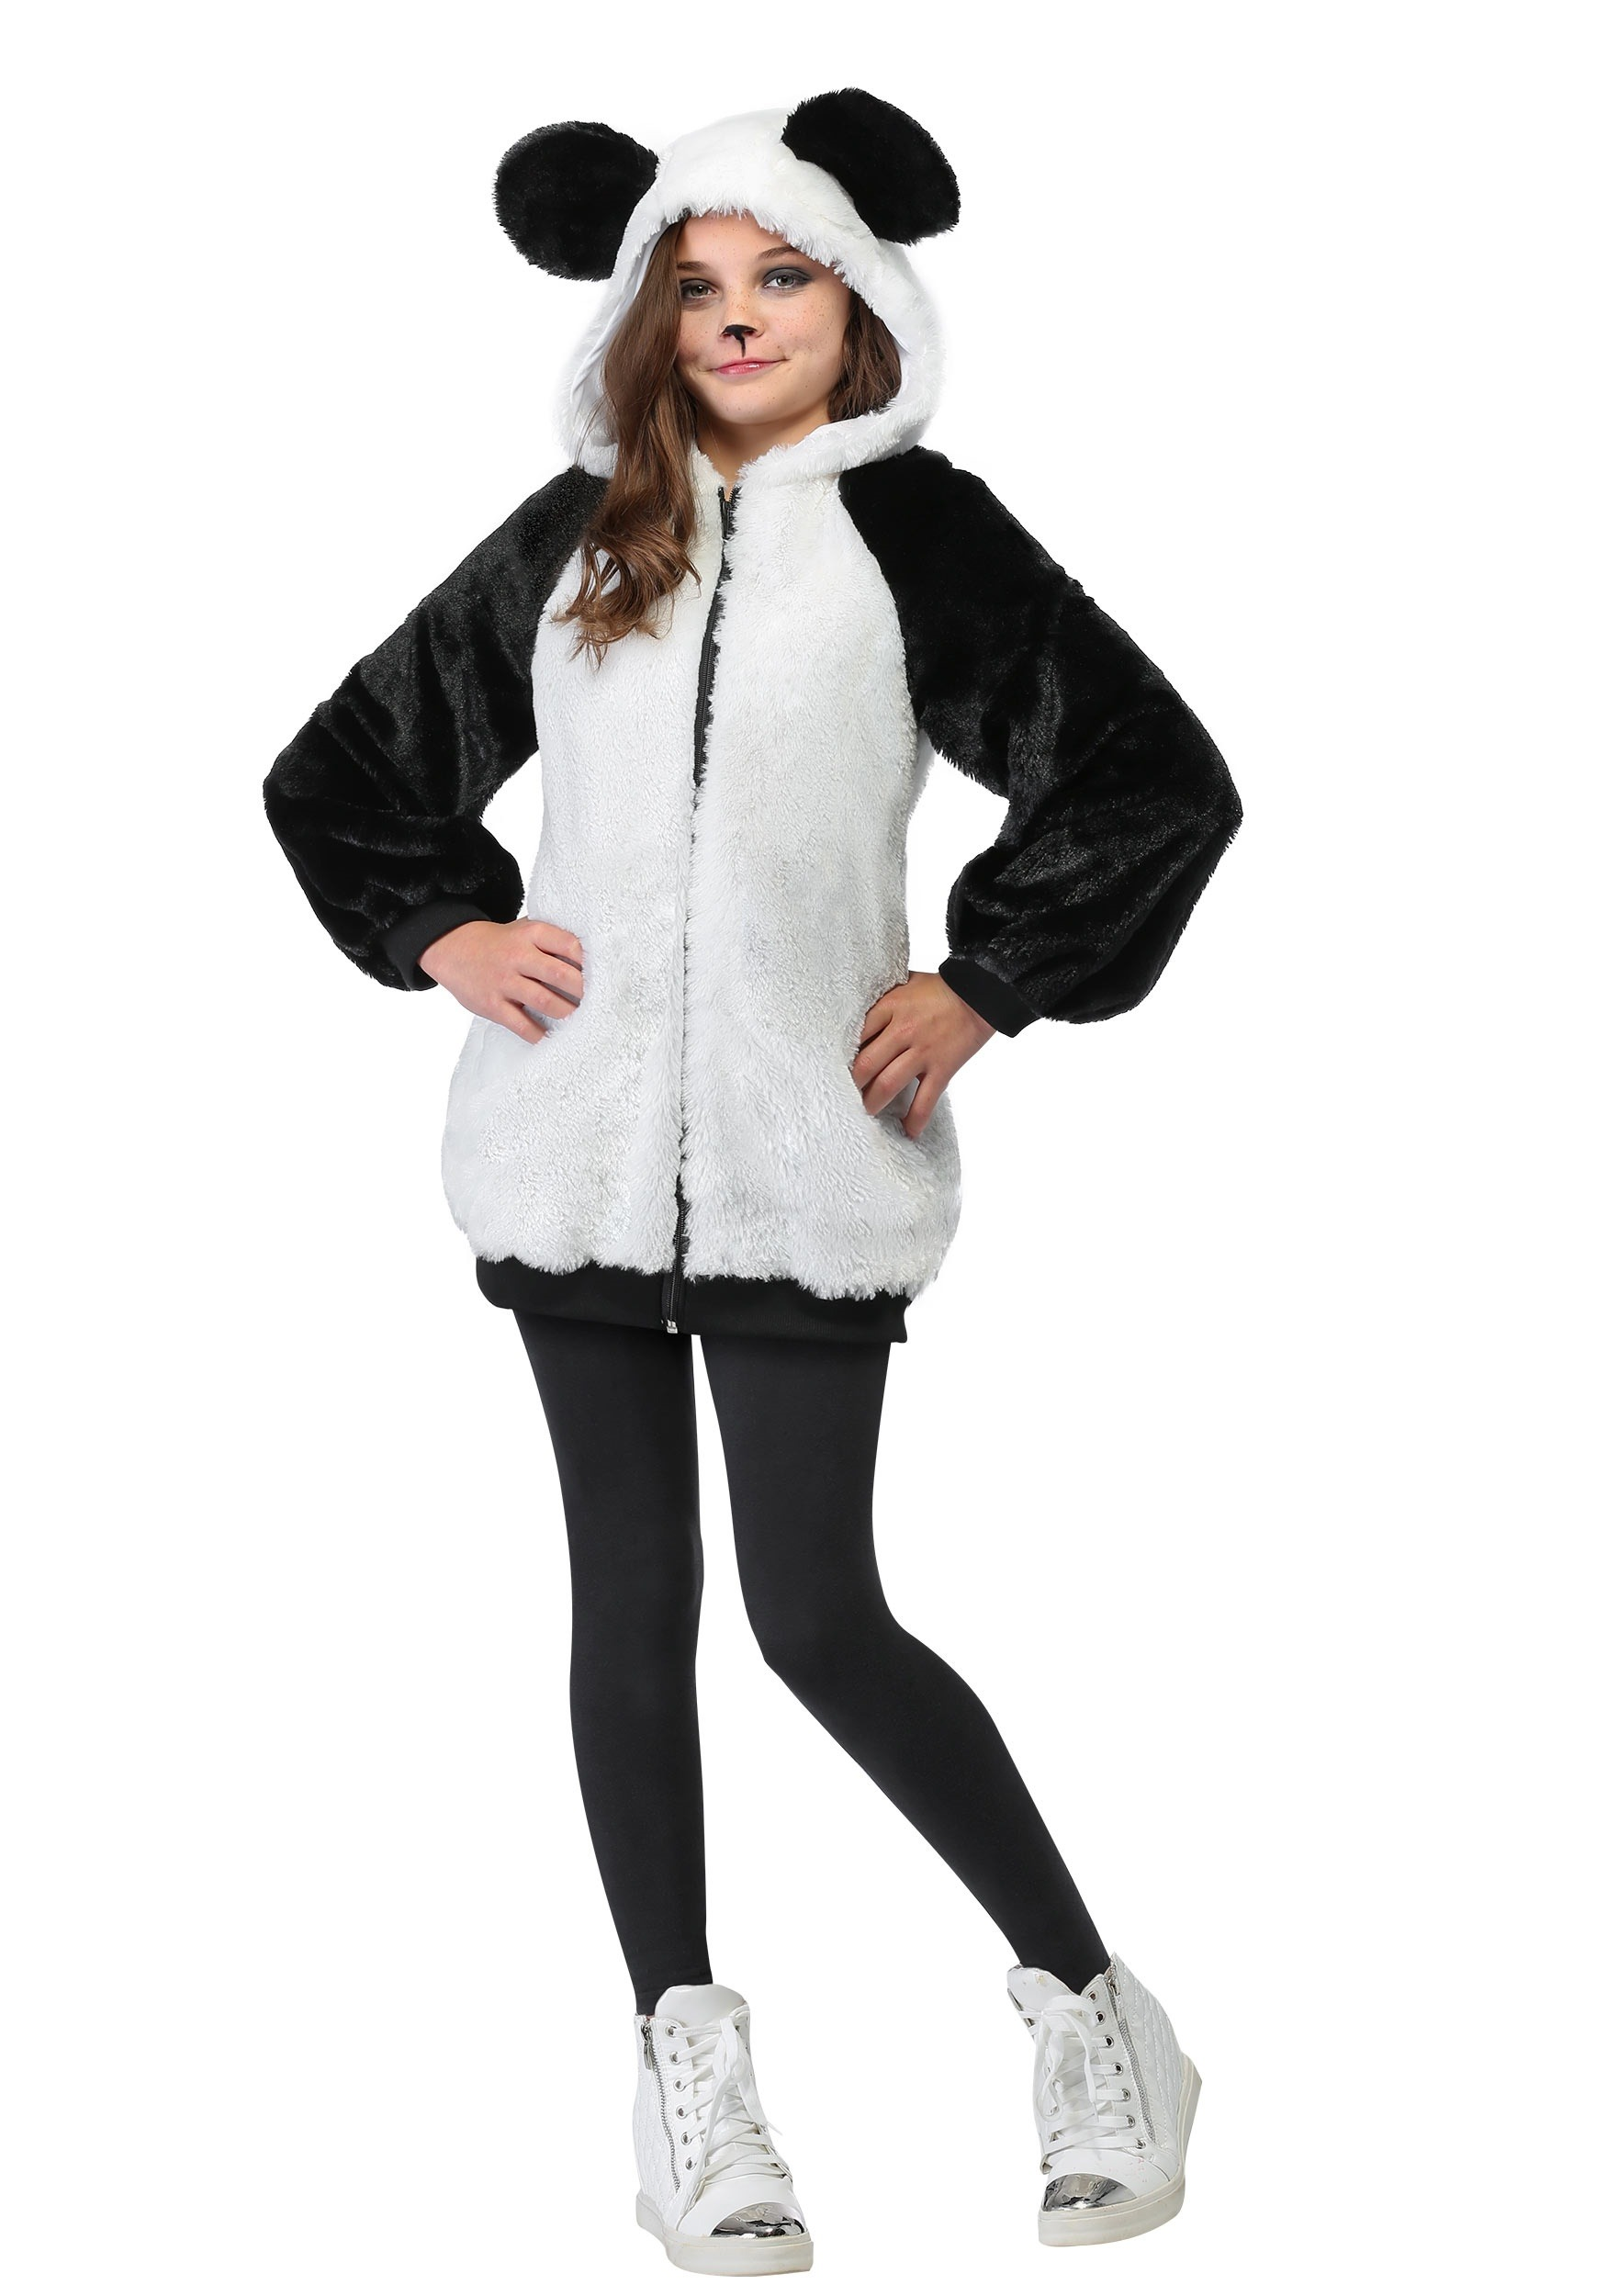 Panda Hooded Jacket Costume for Girls